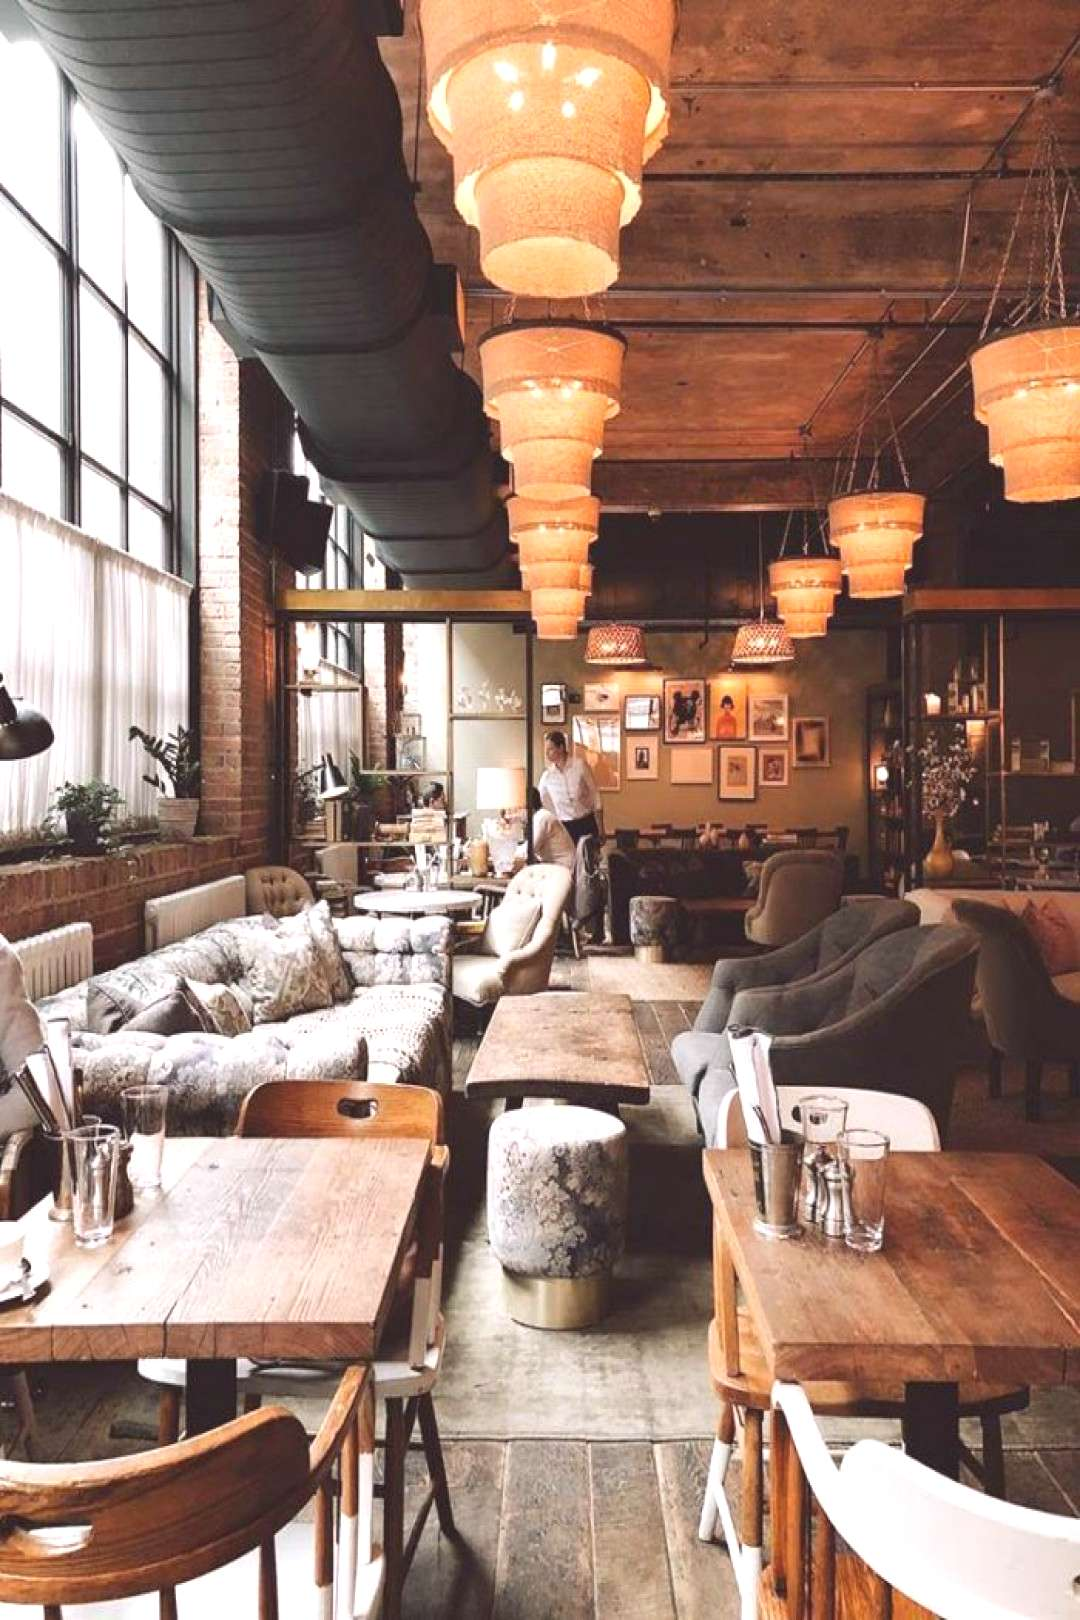 The 14 Most Beautiful Restaurants In All Of Chicago These stunning spots are perfect for date night